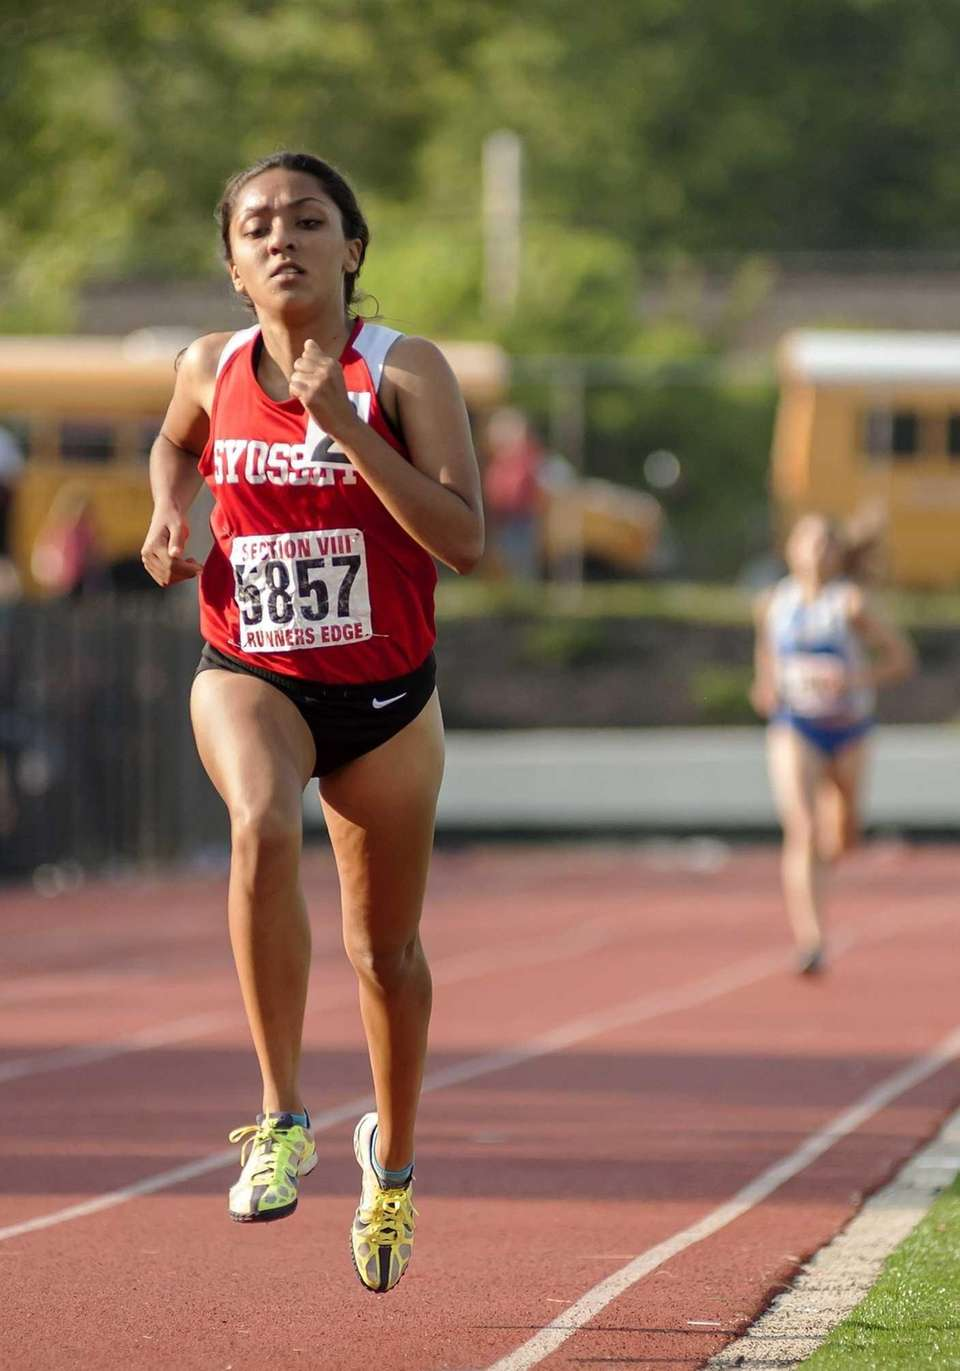 Syosset's Henna Rustami wins the girls 3000 meter